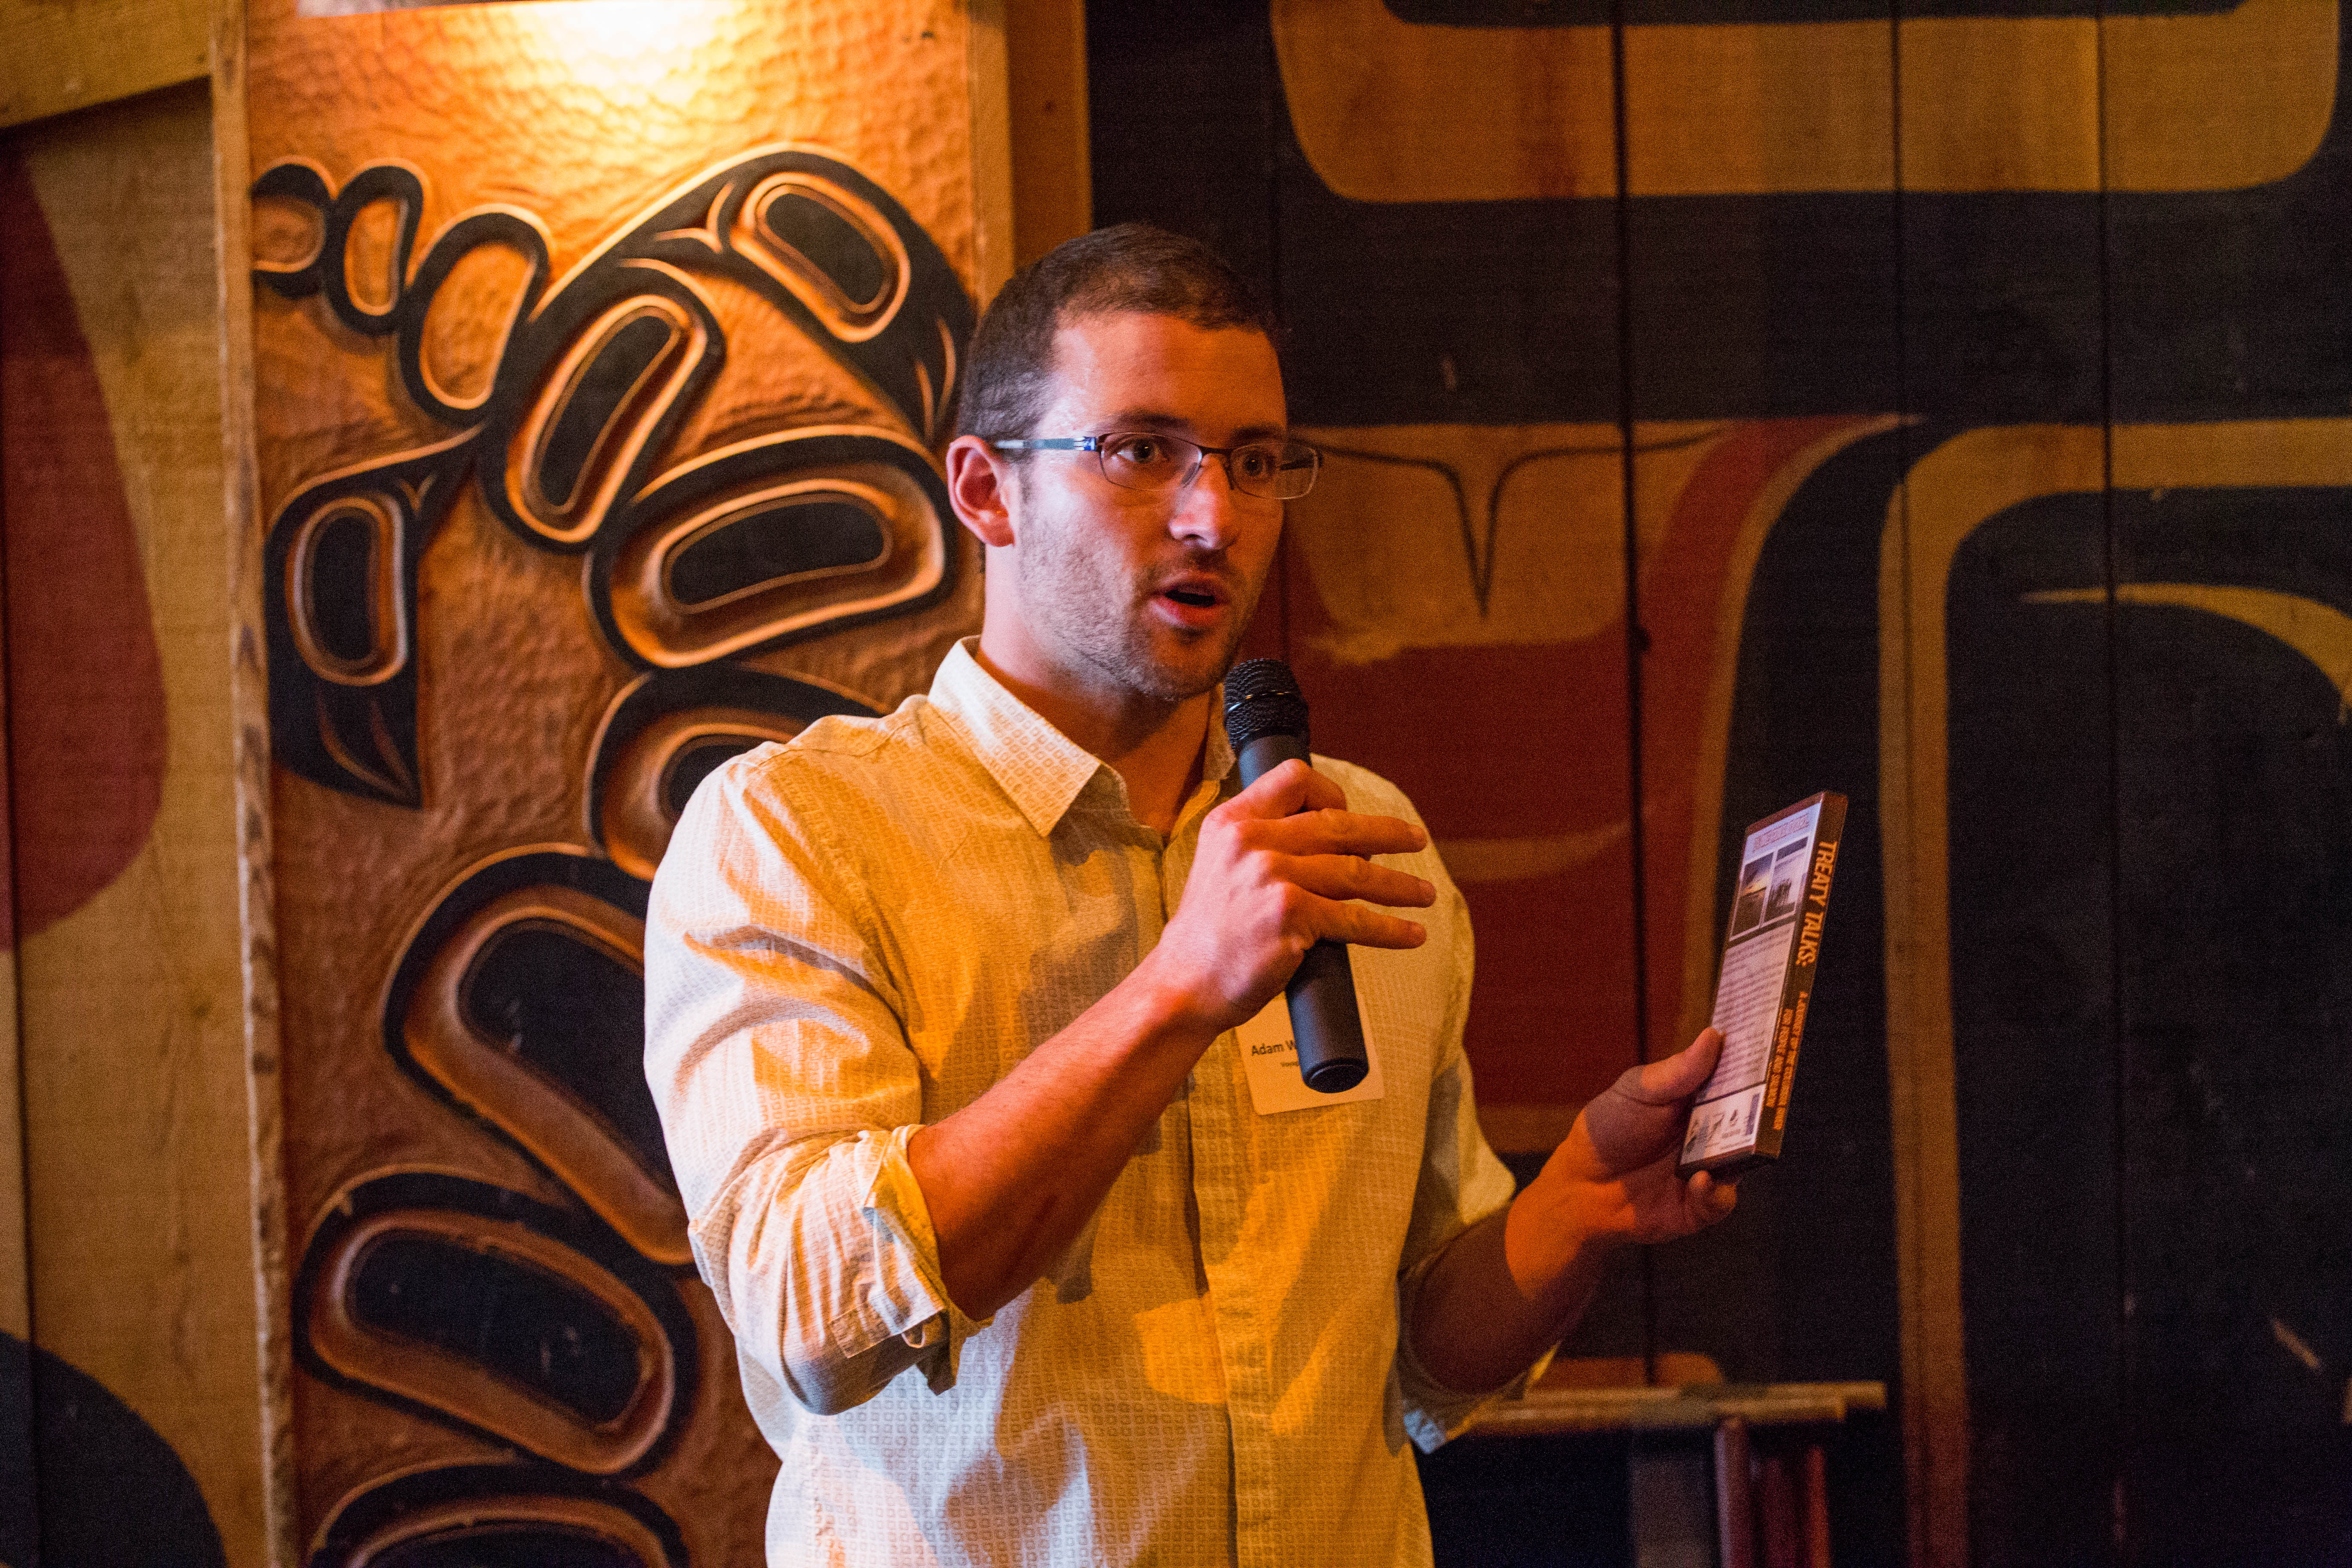 Adam Wicks-Arshack from Voyages of Rediscovery, talking about their video, Treaty Talks